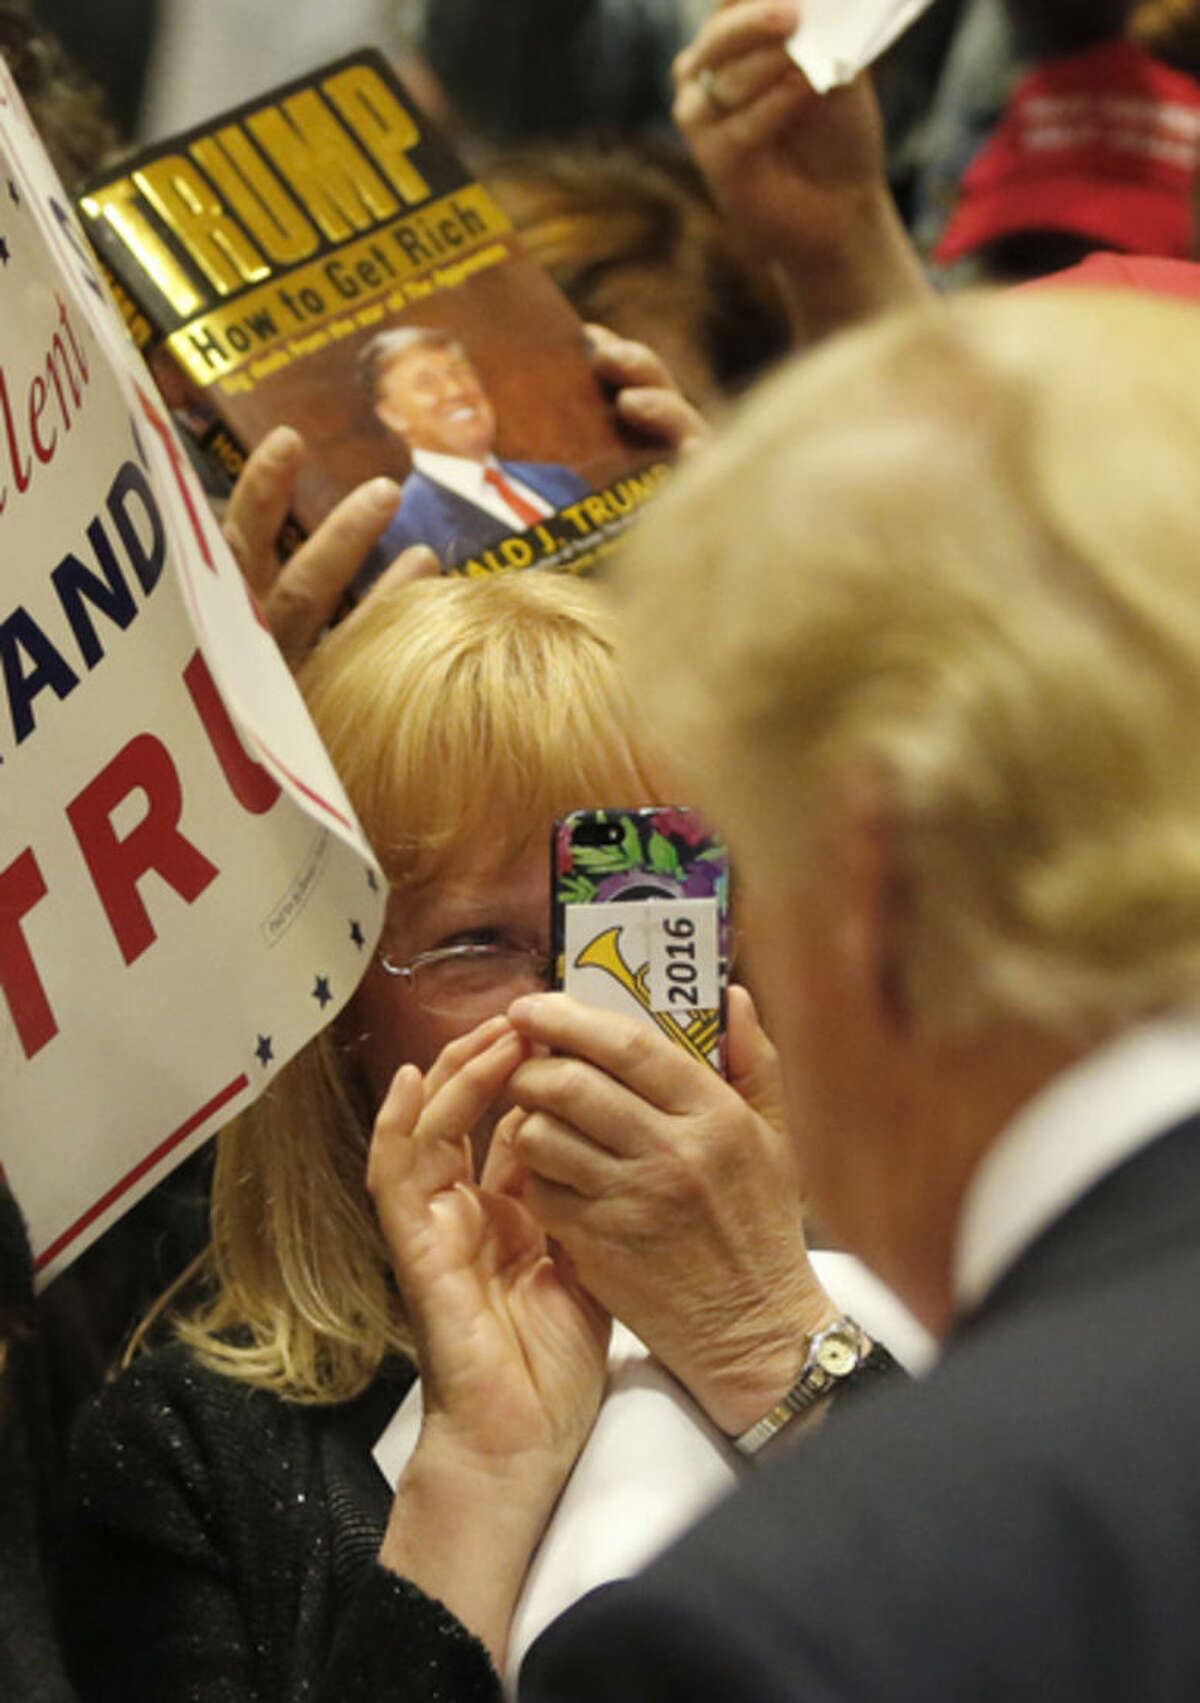 A supporter of Republican presidential candidate, Donald Trump, takes his photograph after a rally at Nathan Hale High School, Sunday, April 3, 2016, in West Allis, Wis. (AP Photo/Charles Rex Arbogast)